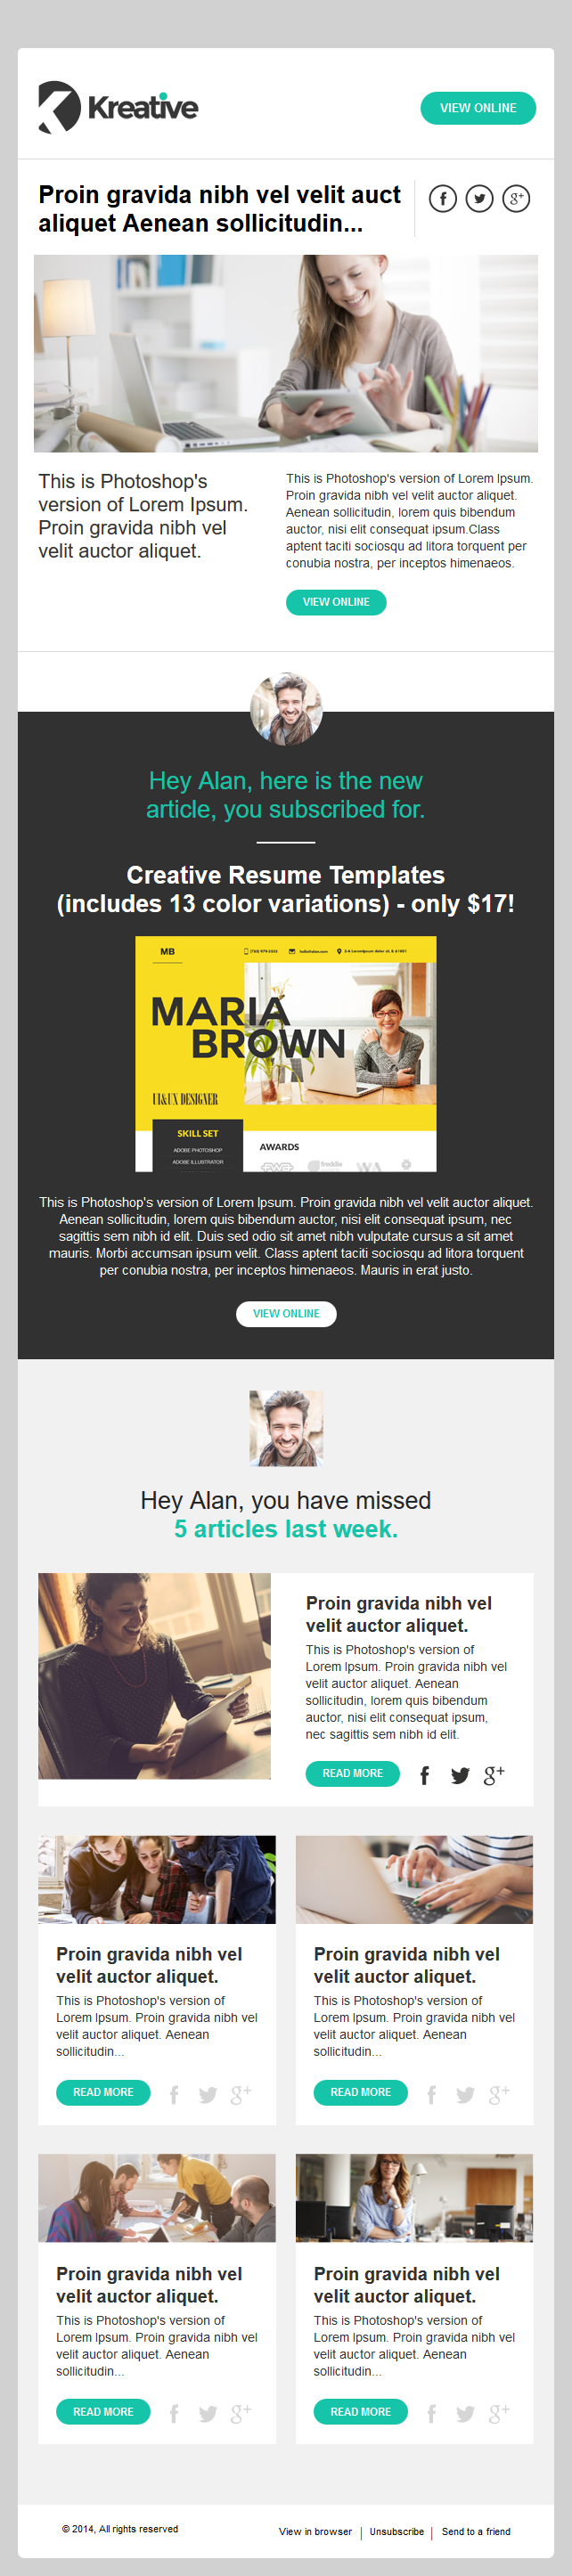 Kreative – Free Email Newsletter Template